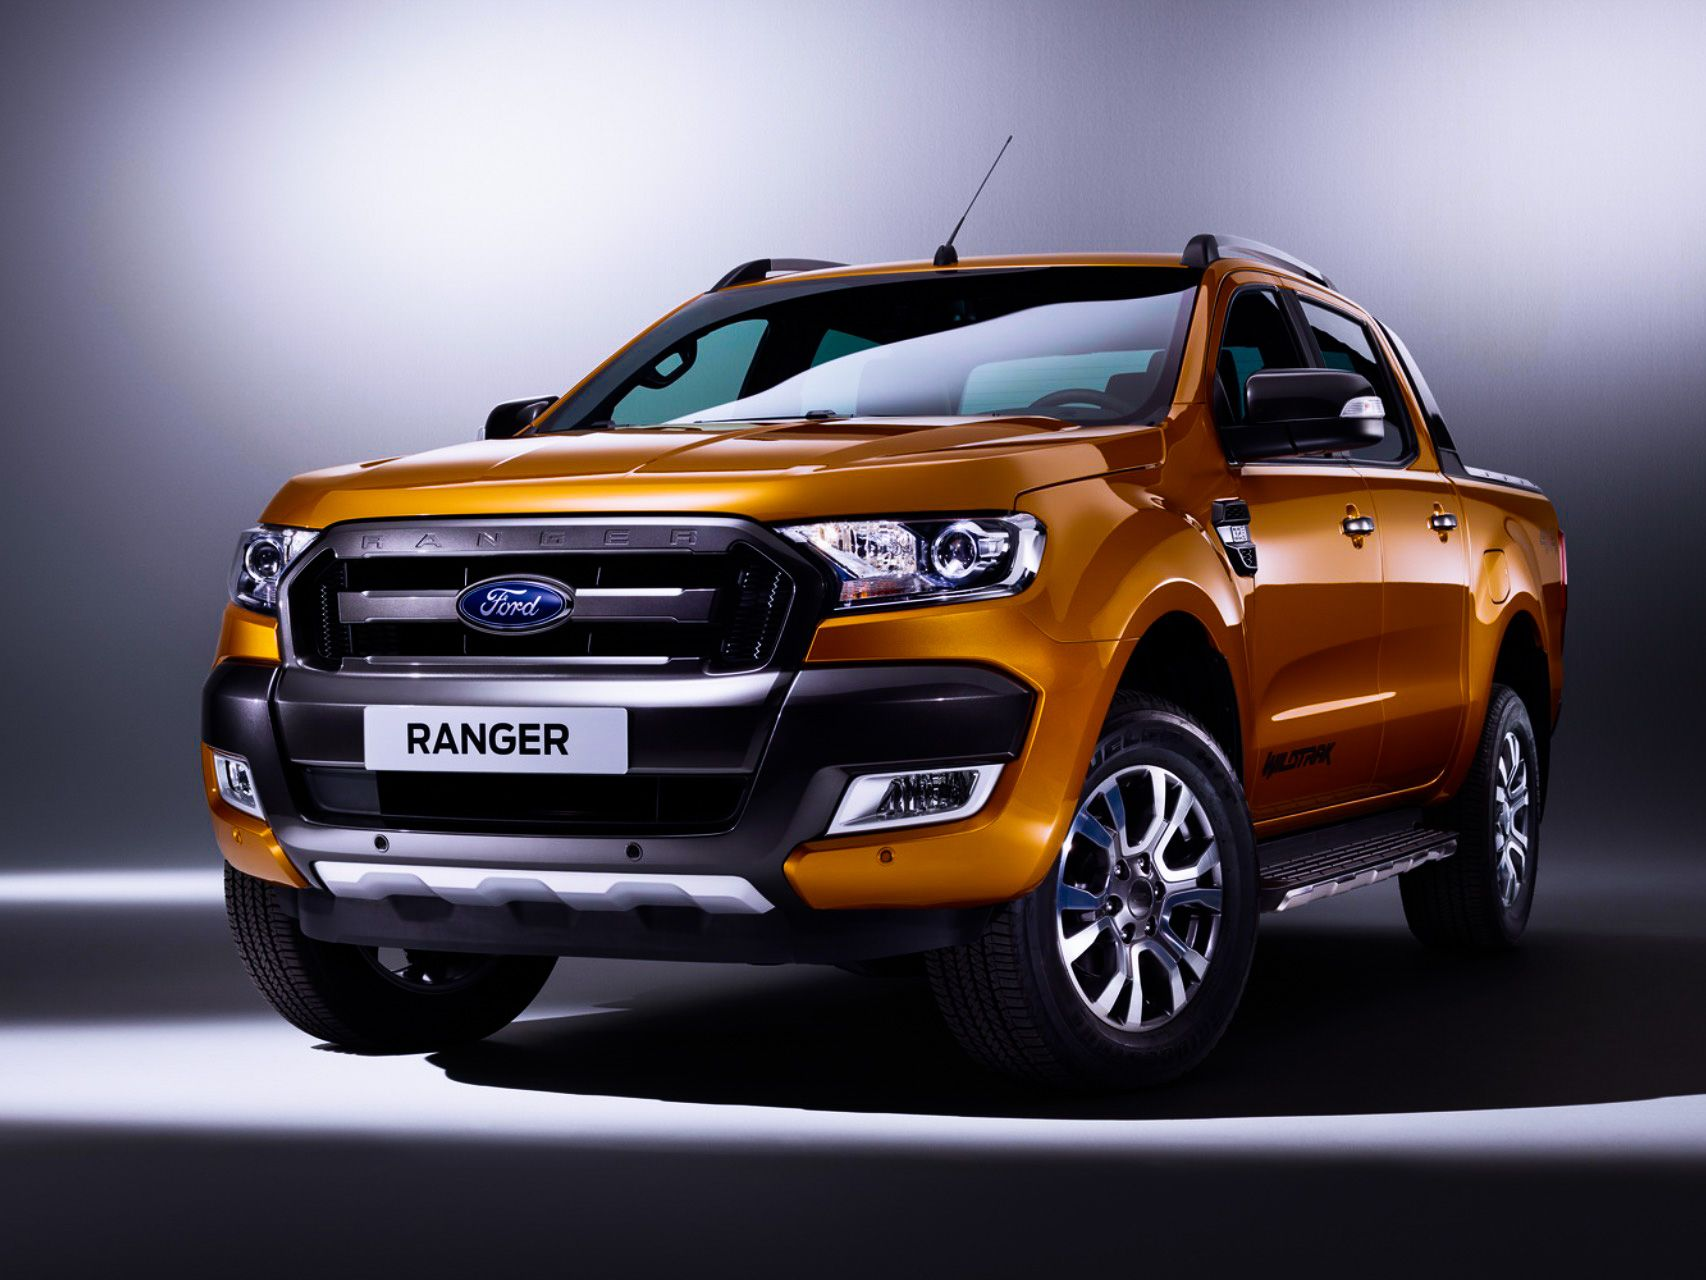 2016 Ford Ranger Wildtrak Http Ford Co Uk Cars Ranger Overview Primarytabs Ford Ranger Wildtrak Camioneta Ford Ranger Vehiculos Todoterreno